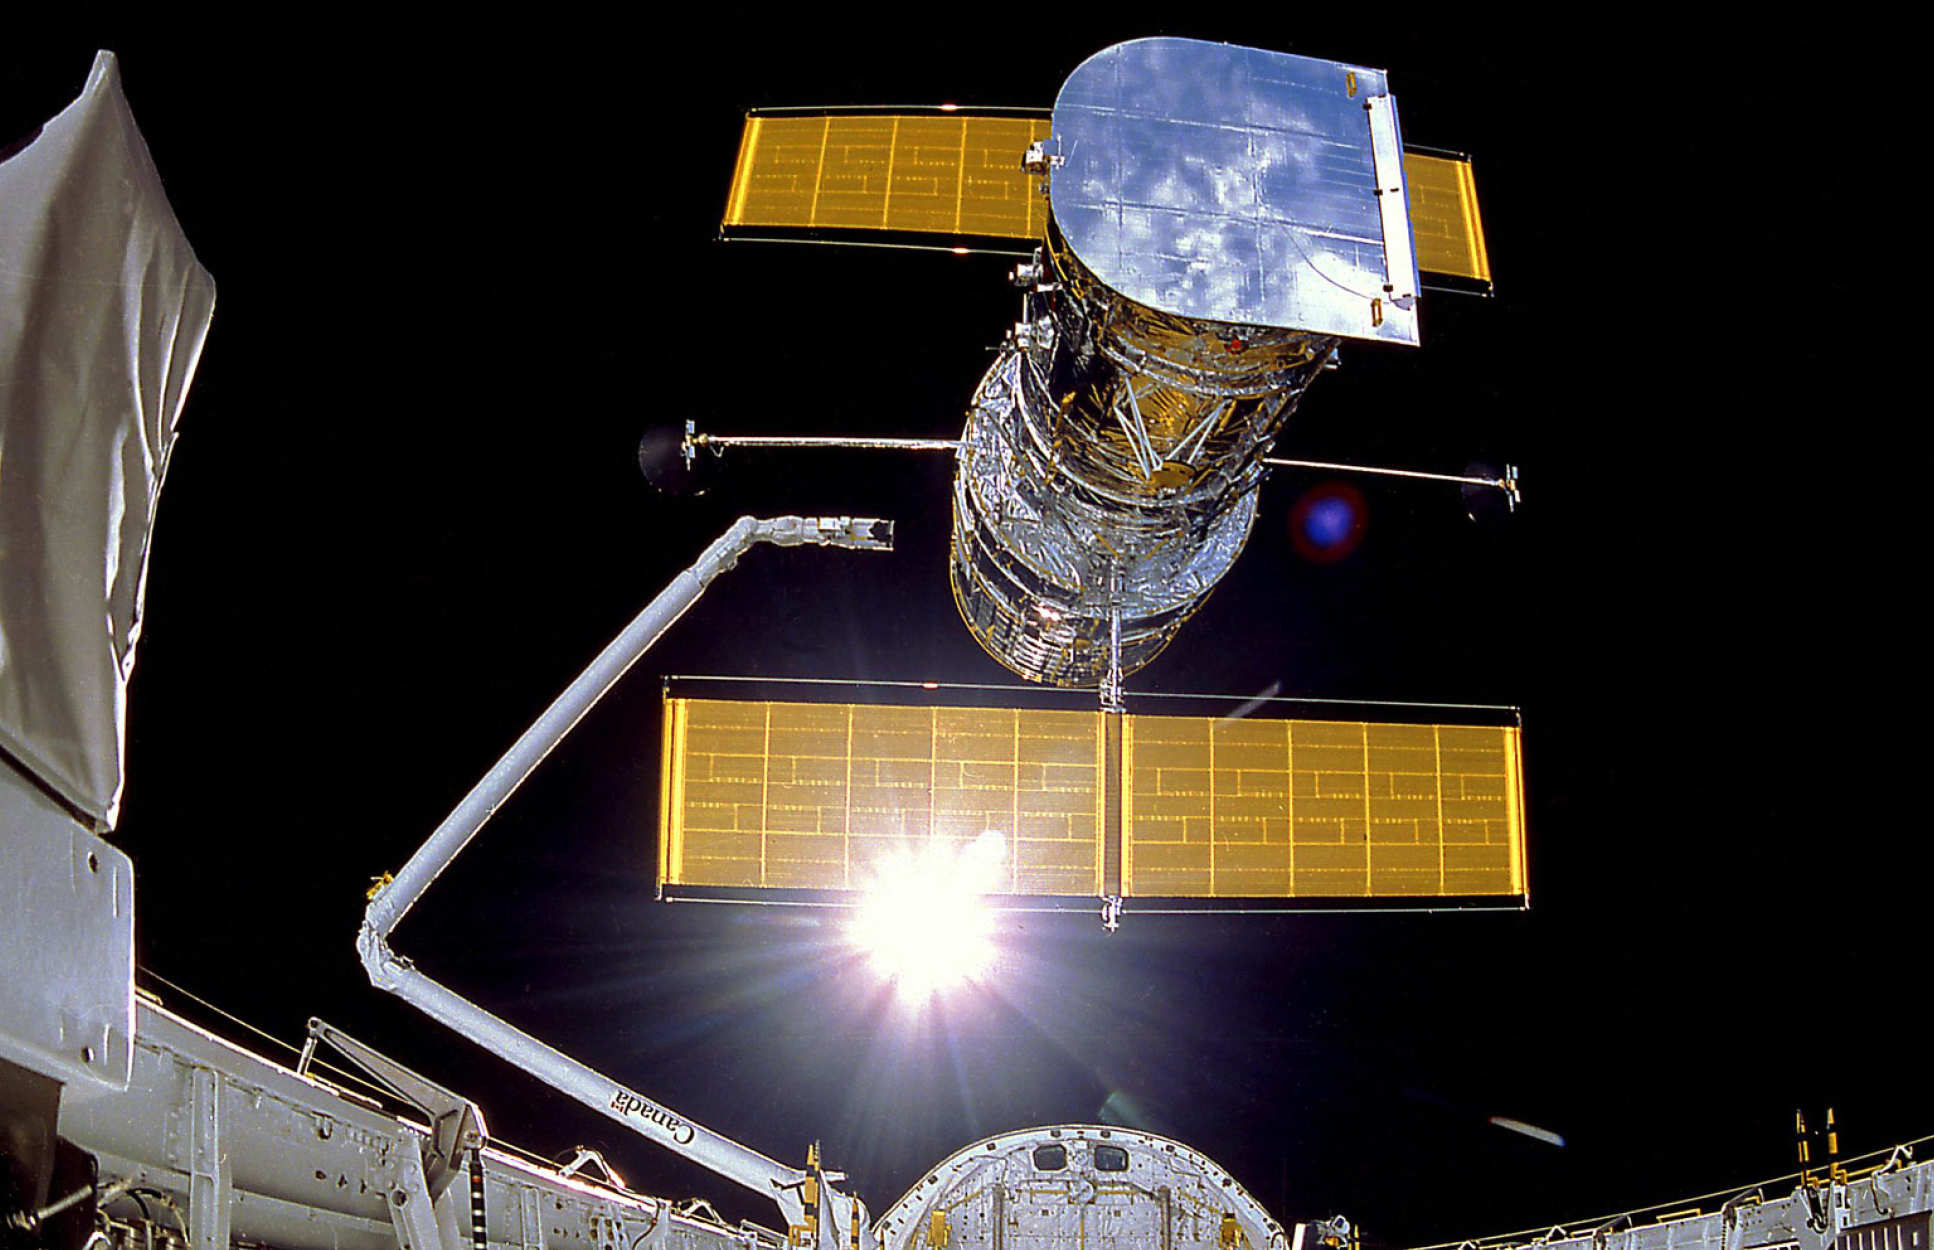 The deployment of the Hubble Space Telescope in April 1990